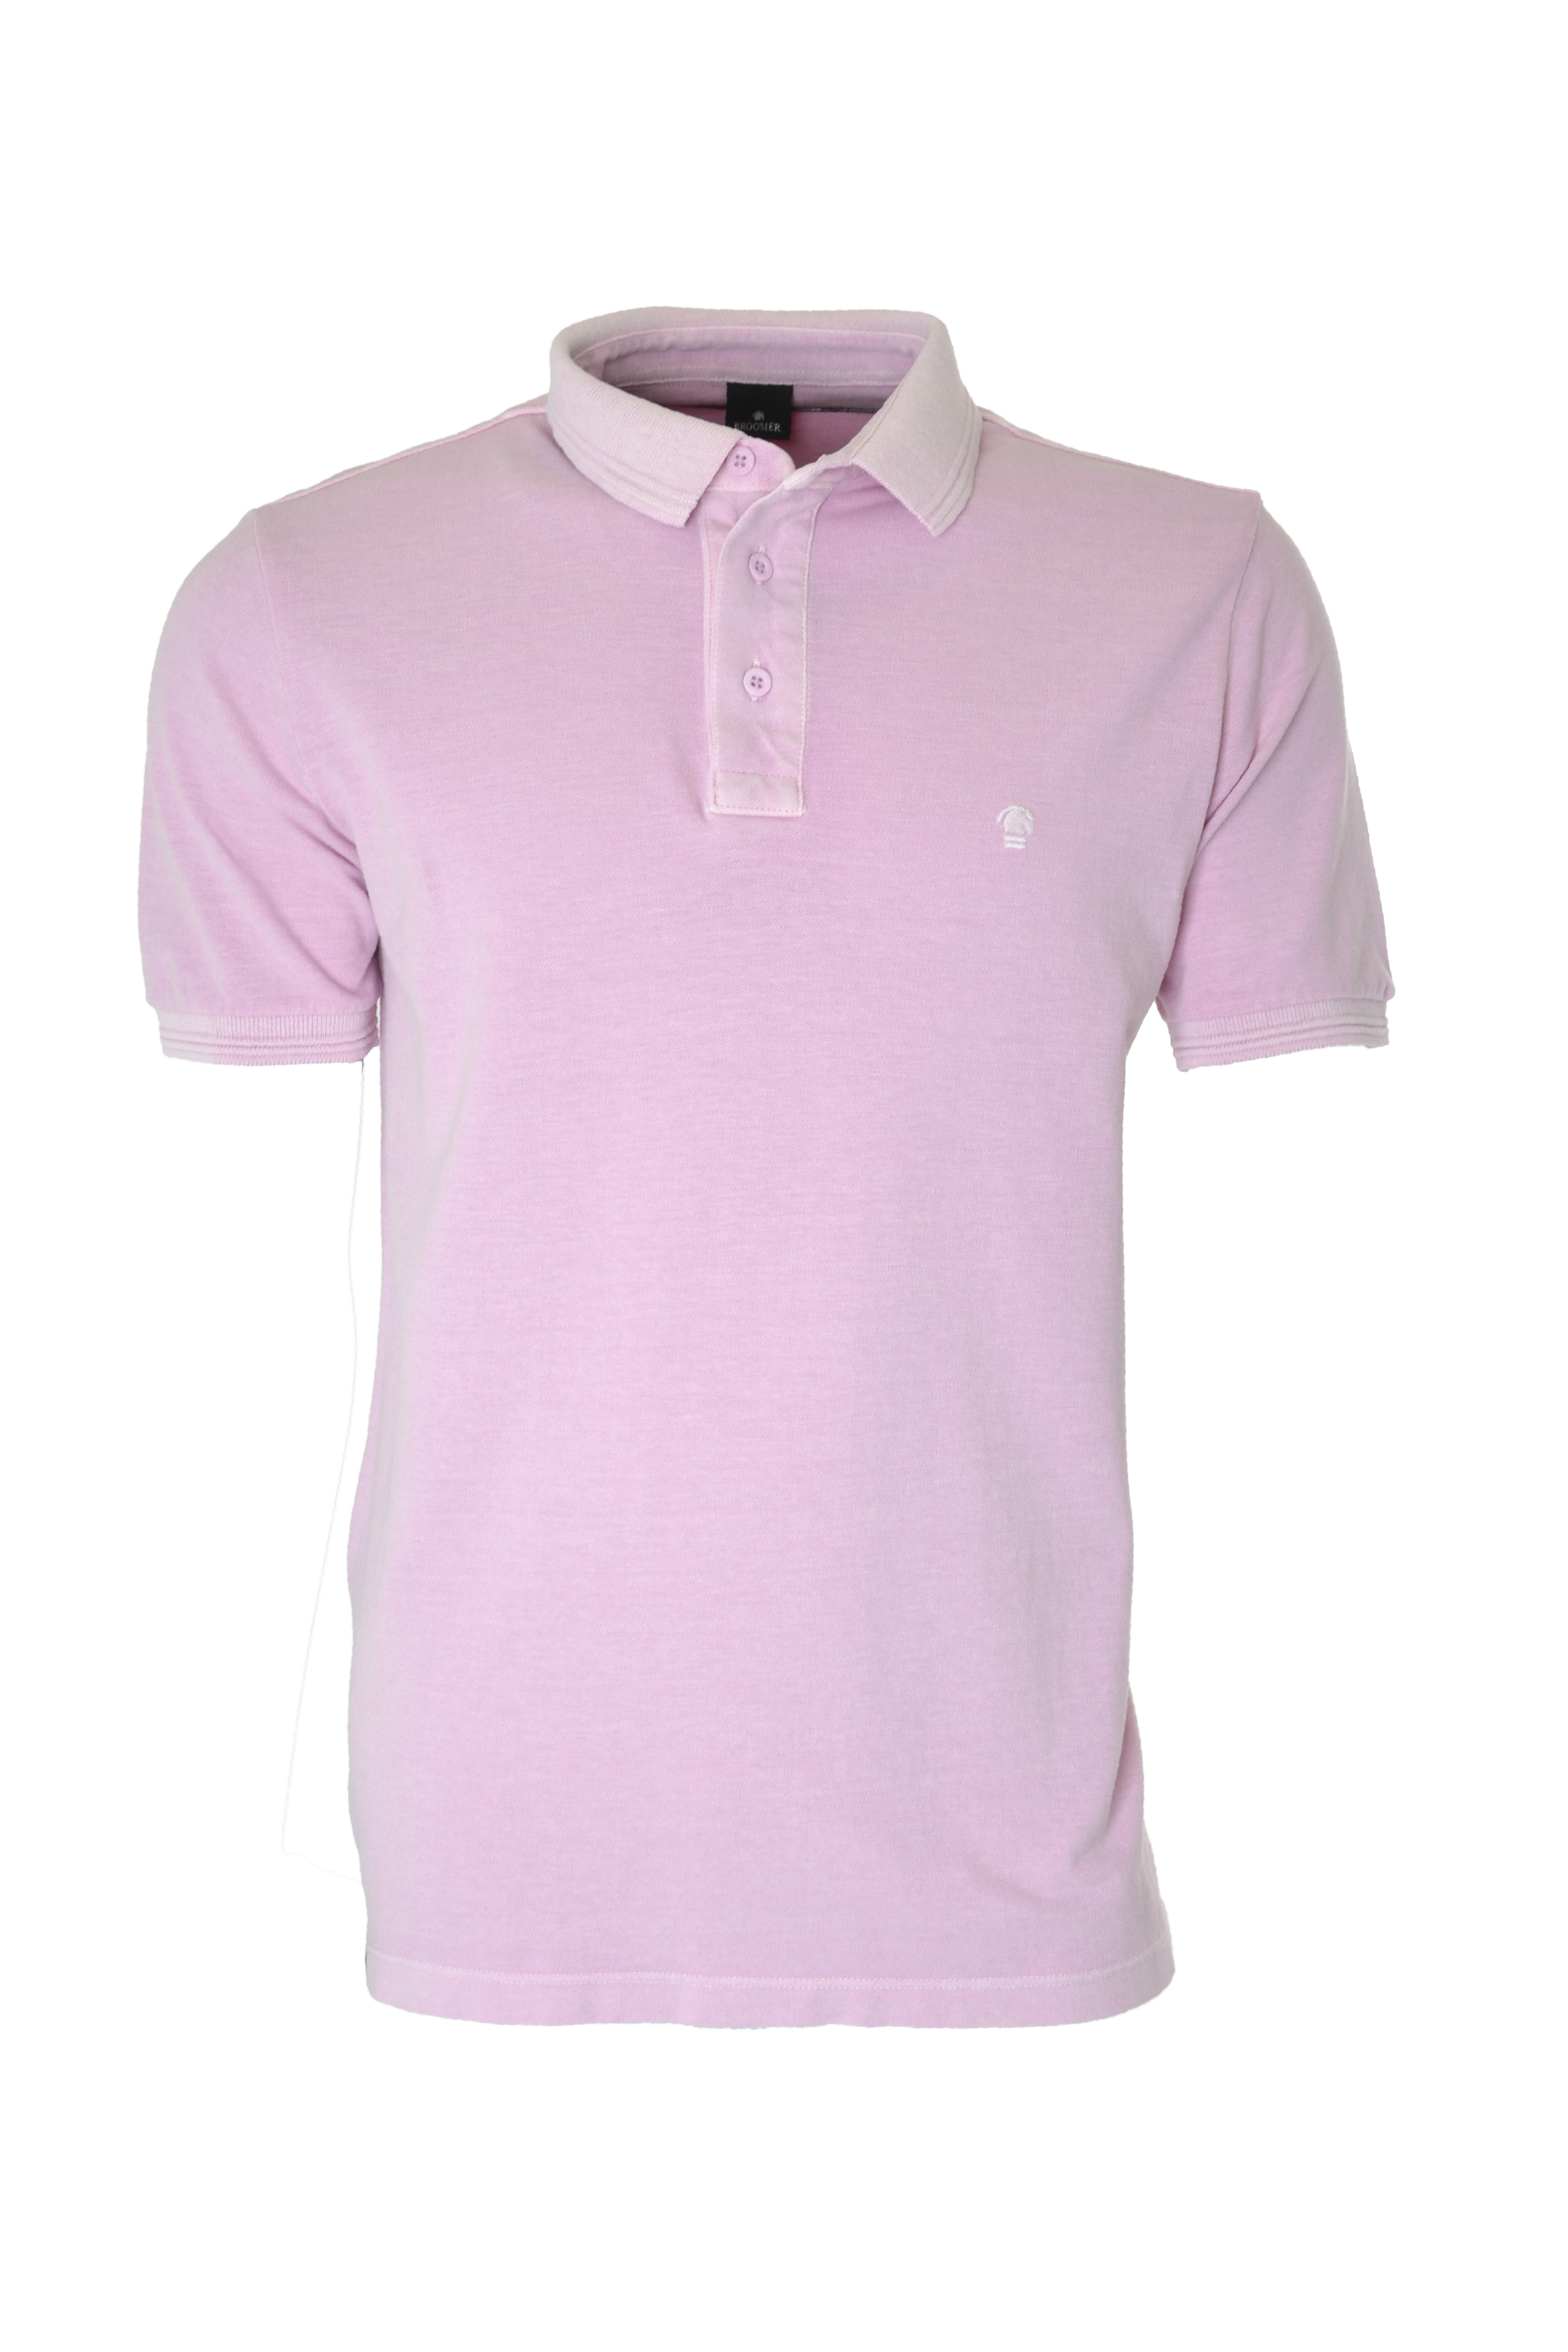 POLO MC CASUAL SLIM ALGODAO PIQUET LISO ROSA CLARO